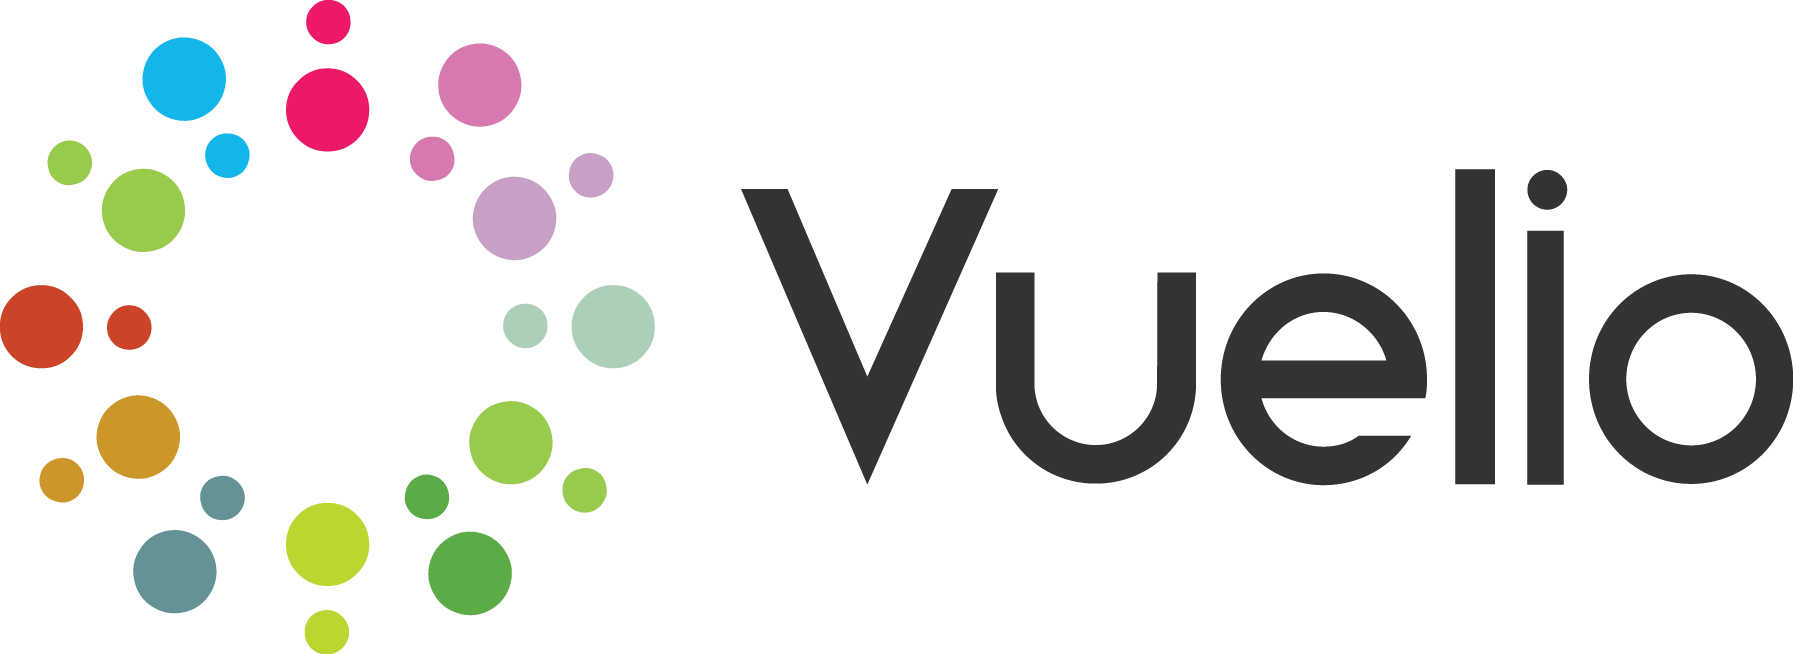 Vuelio-Logo-Grey- No- Background